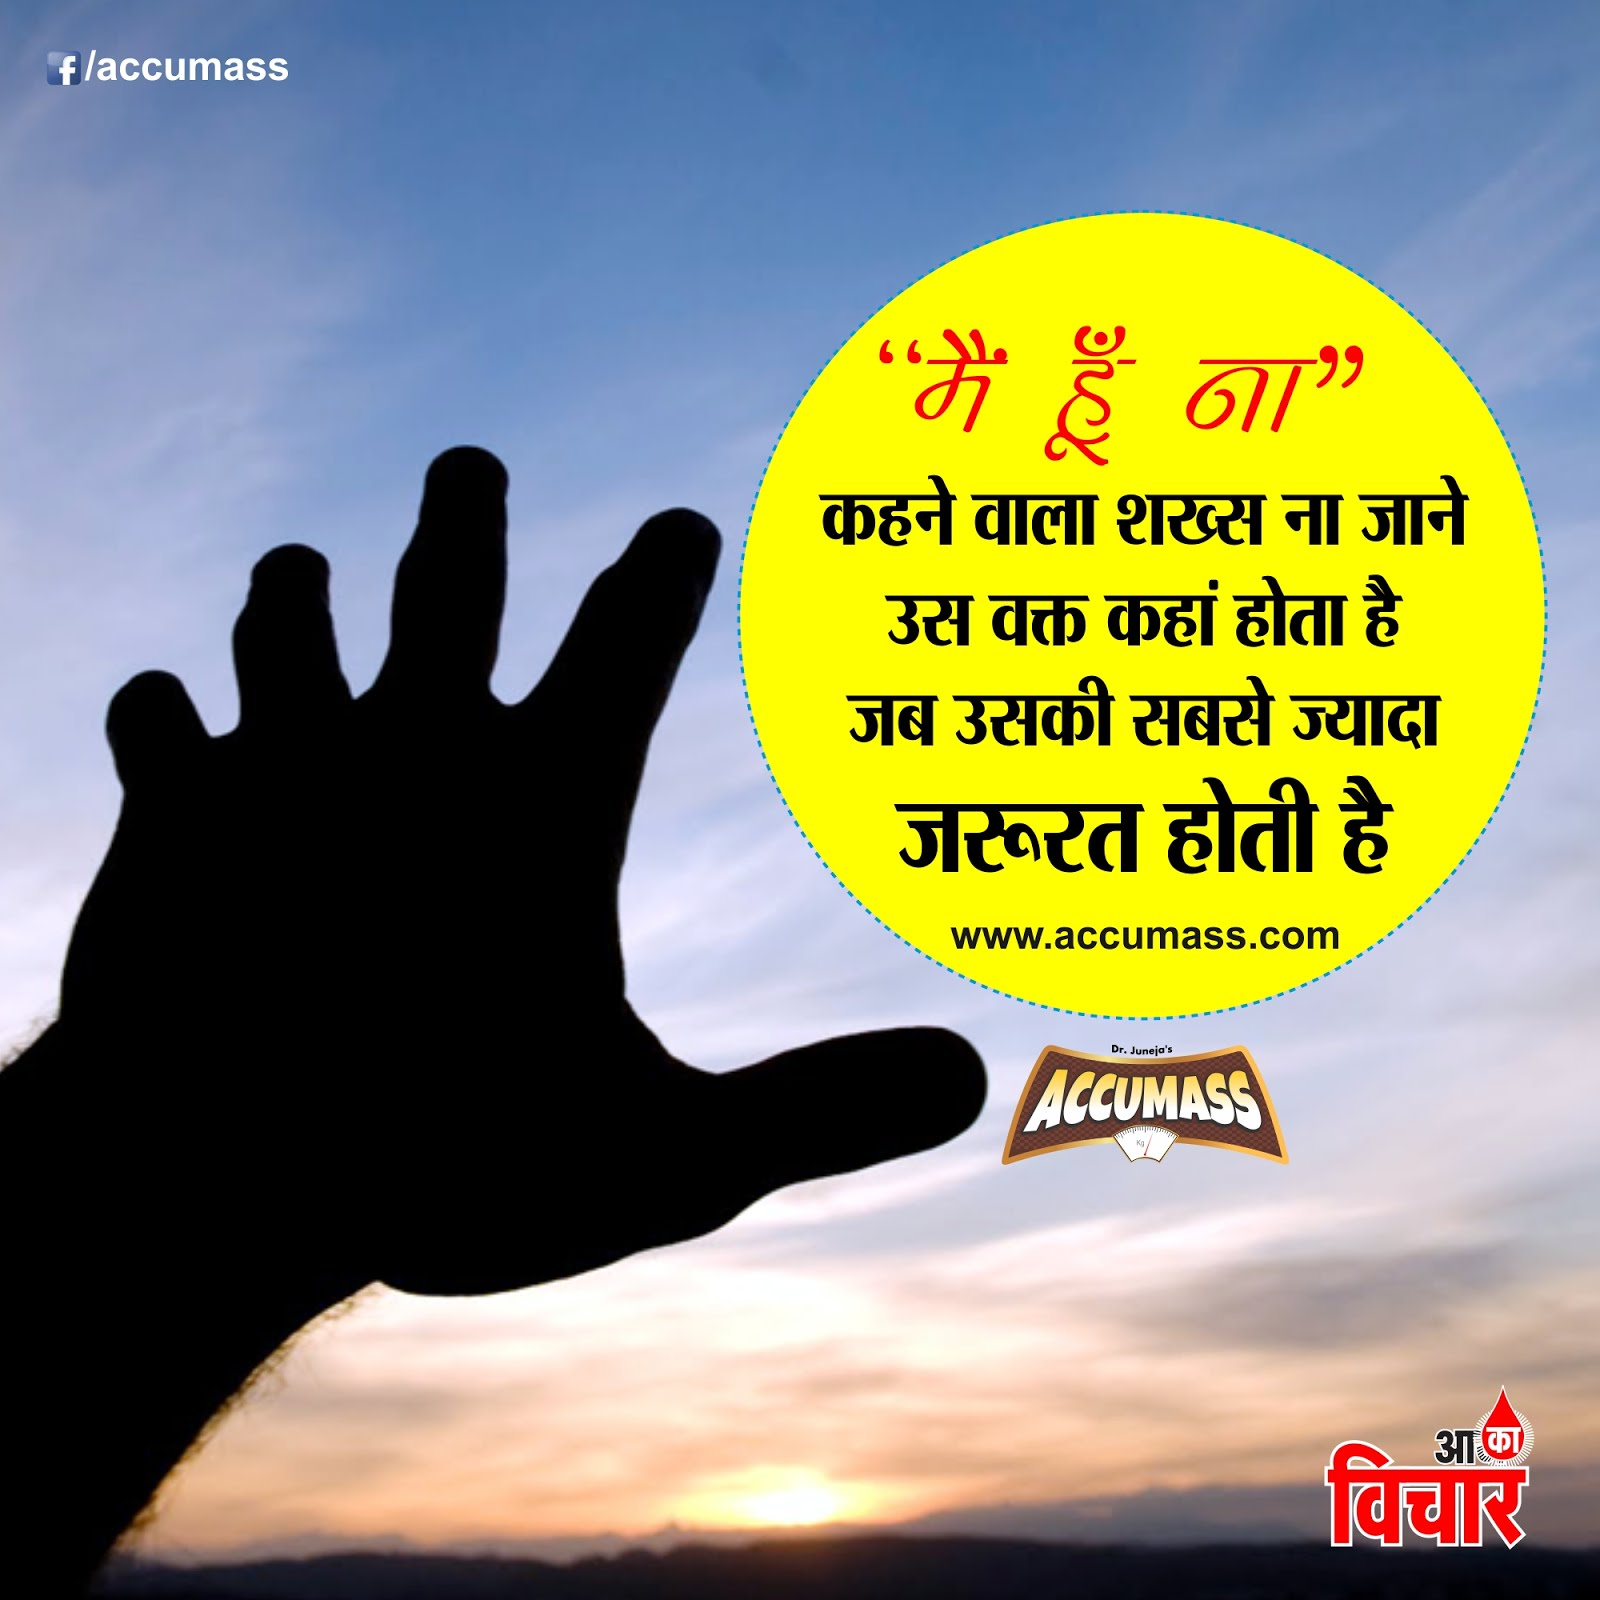 Jokes & Thoughts: Hindi Thought Of The Day